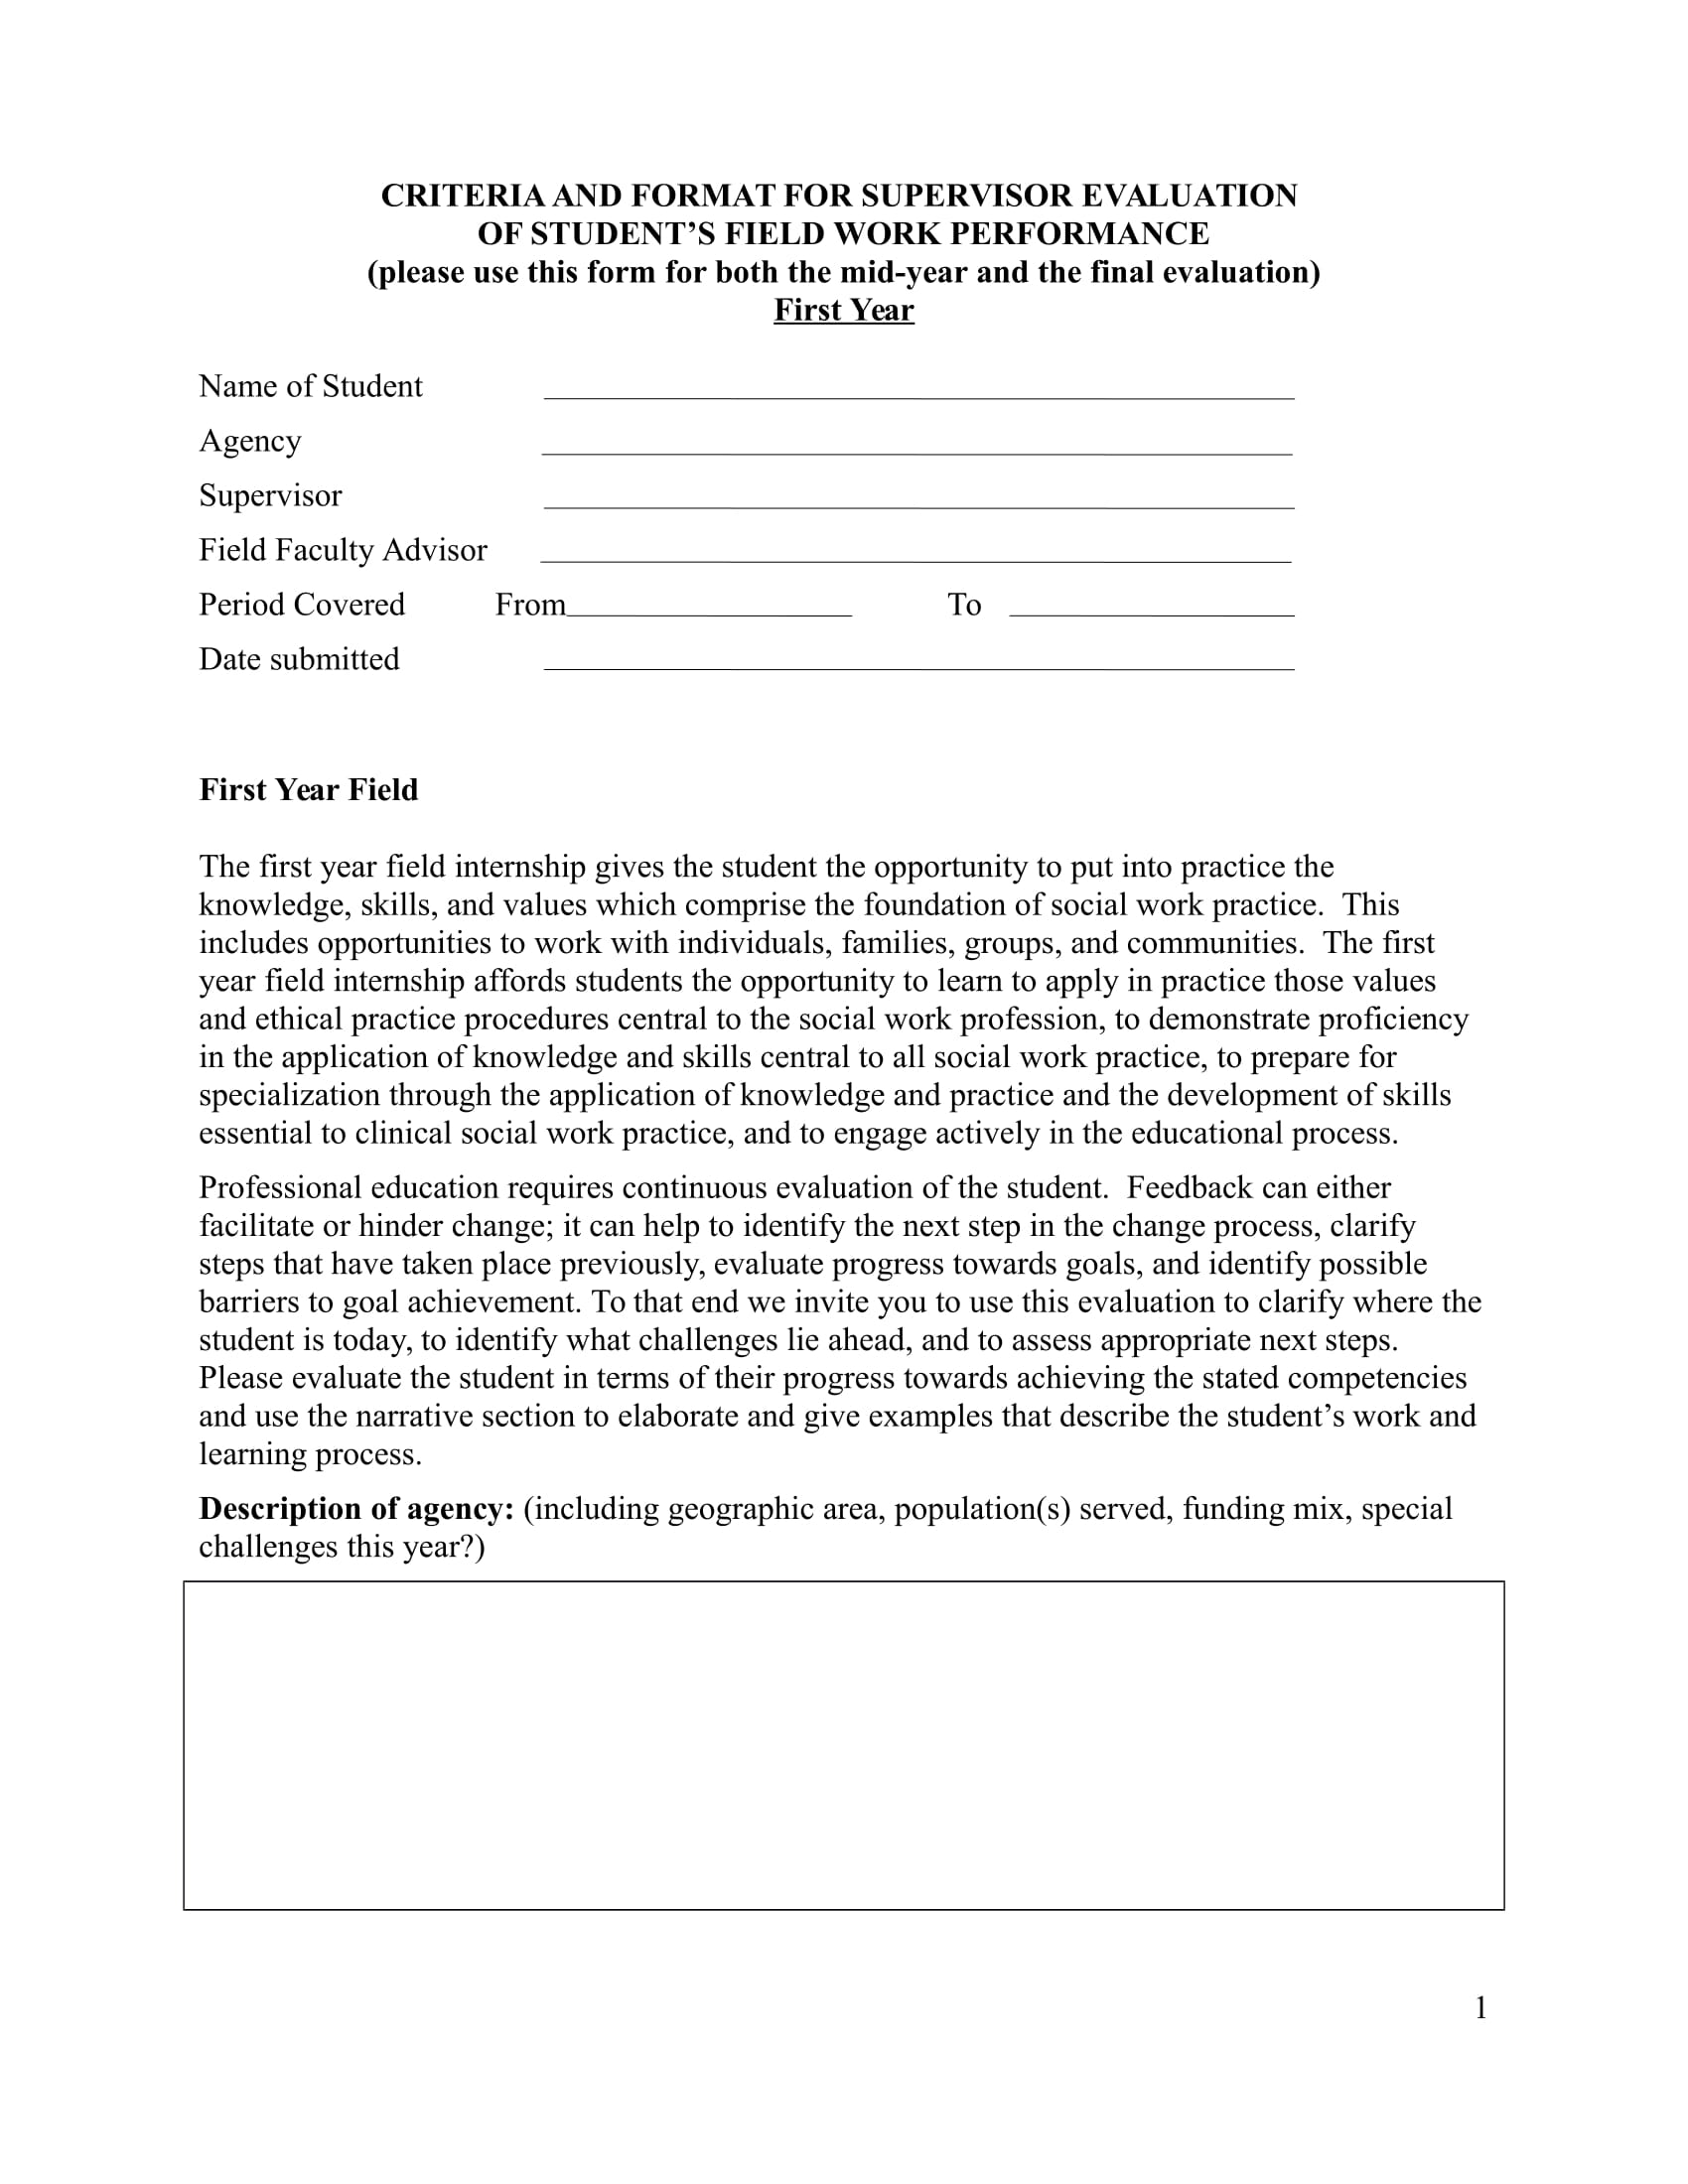 field work performance review form 1